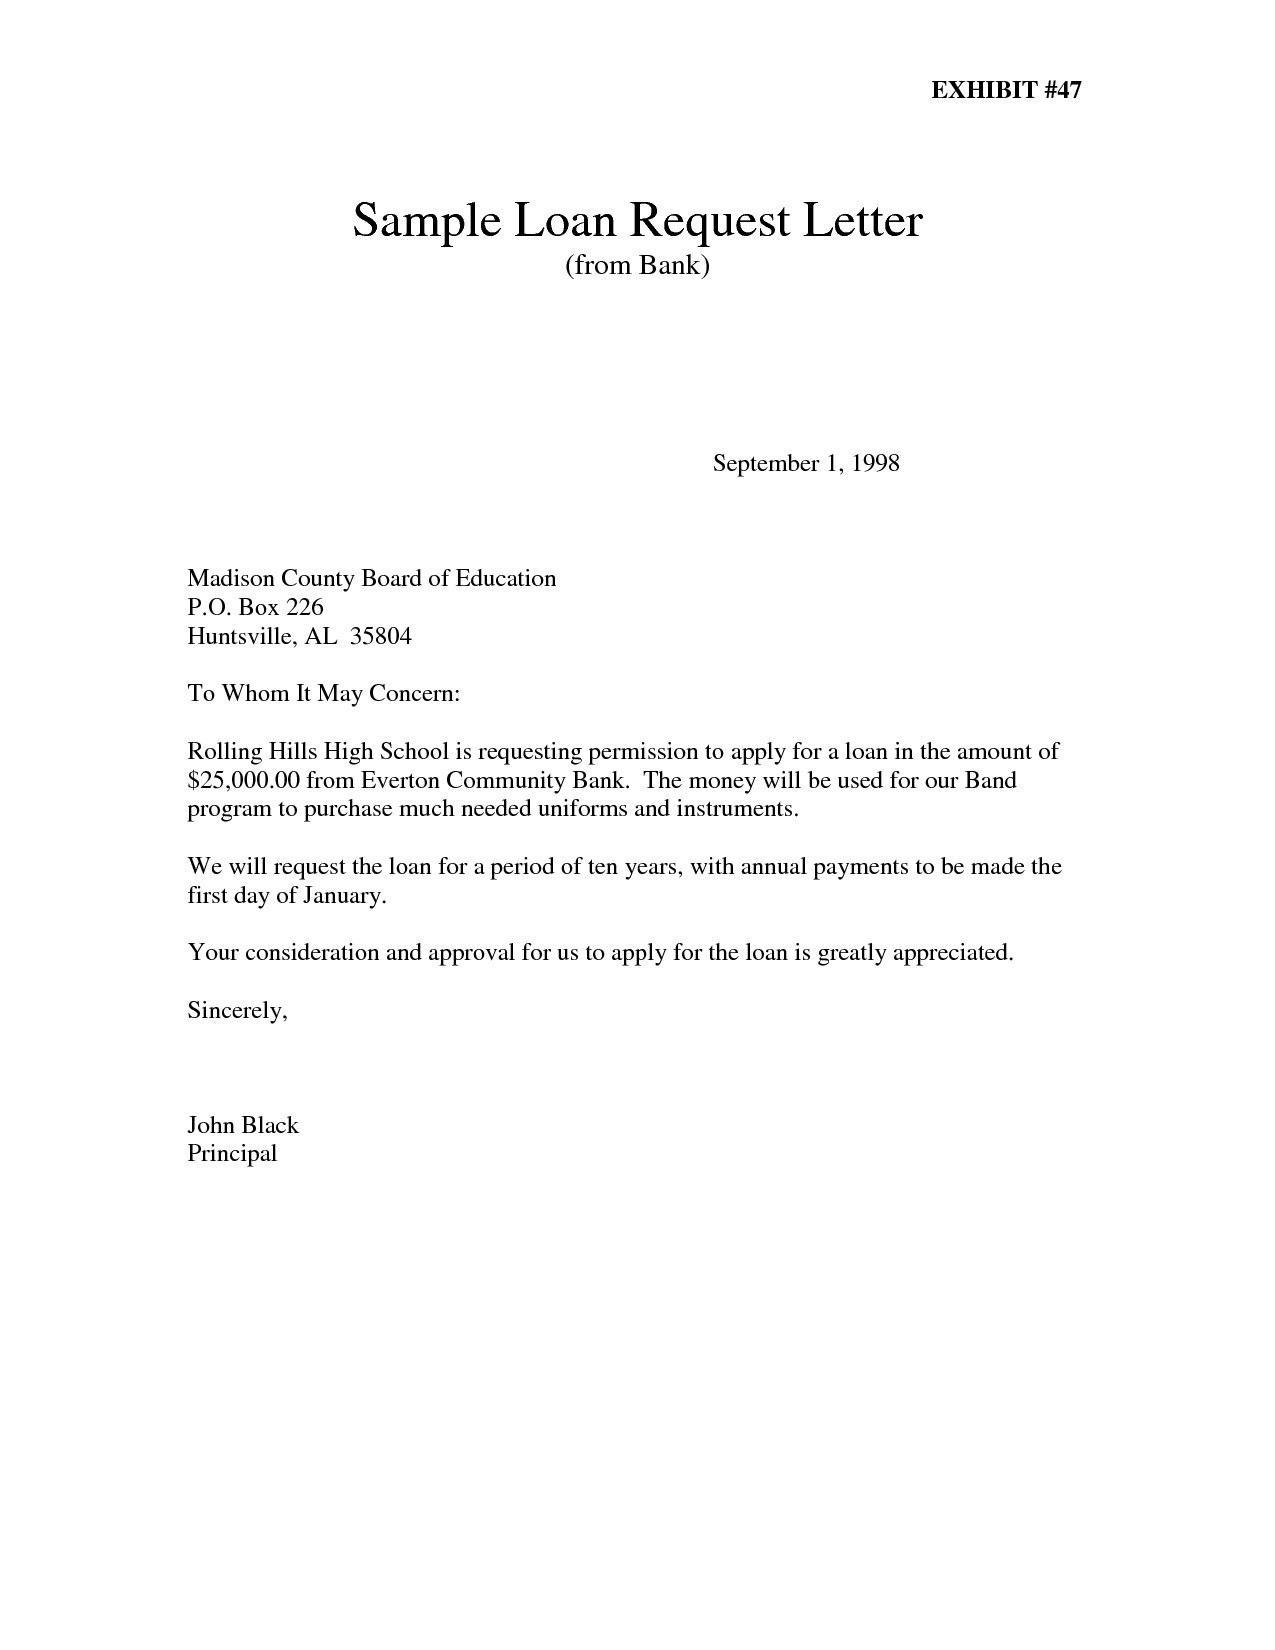 personal loan letter template best request letter to bank loan